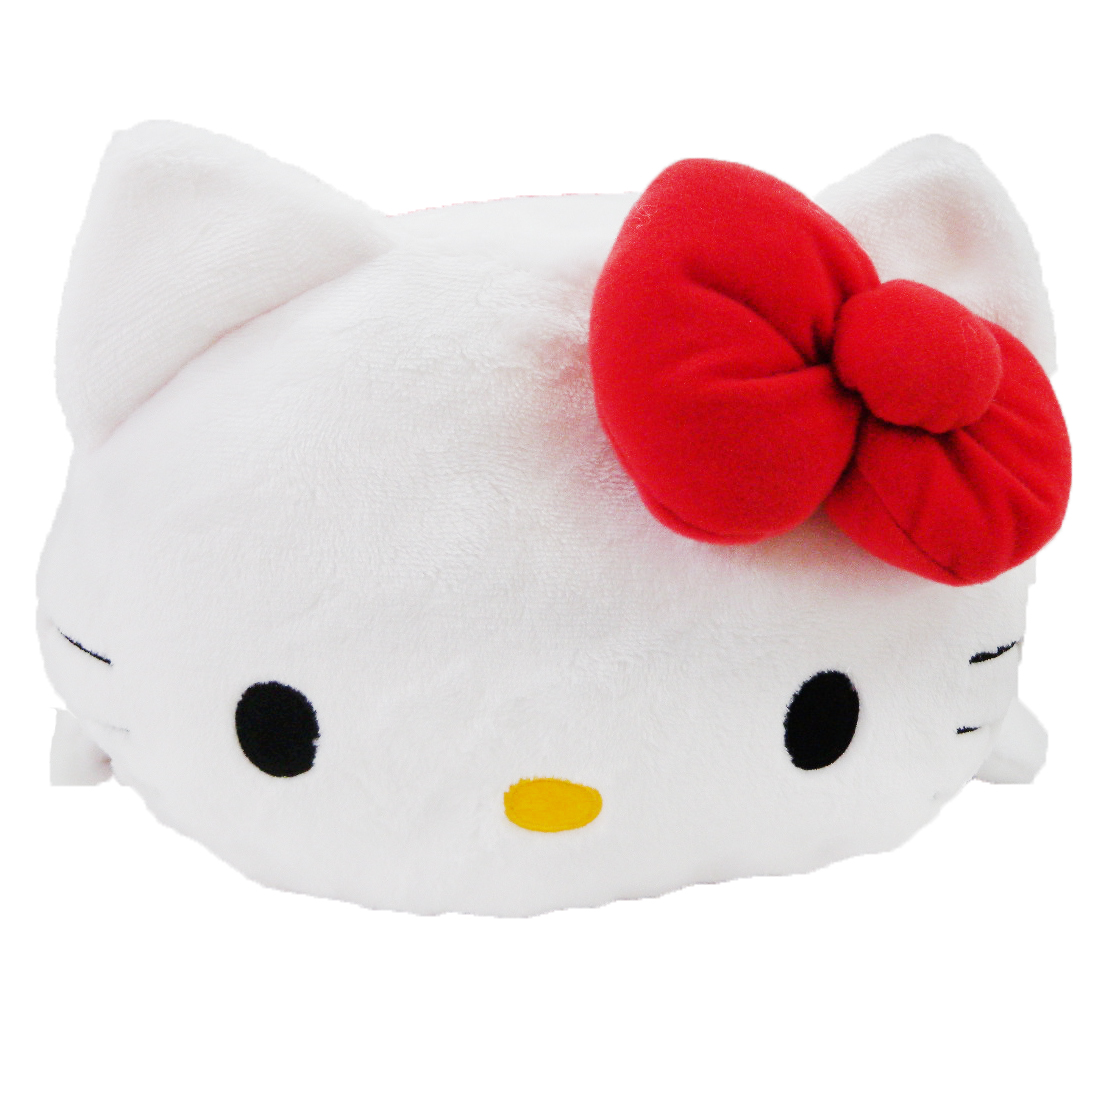 凱蒂貓Hello Kitty_抱枕_Hello Kitty- KT筒形抱枕-紅